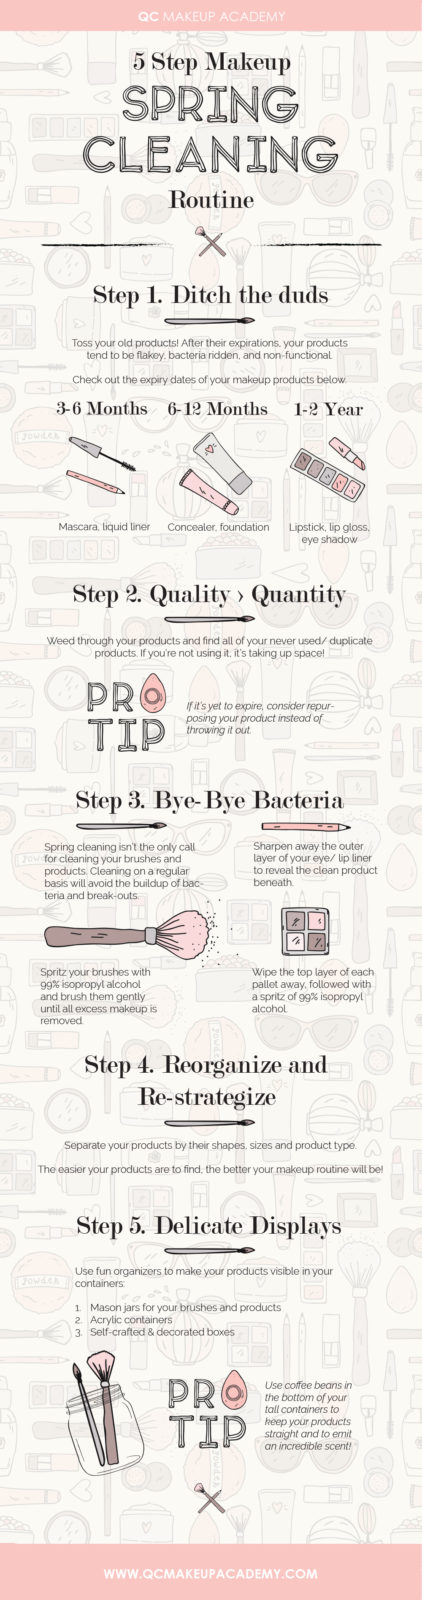 5 Step Makeup Spring Cleaning Routine